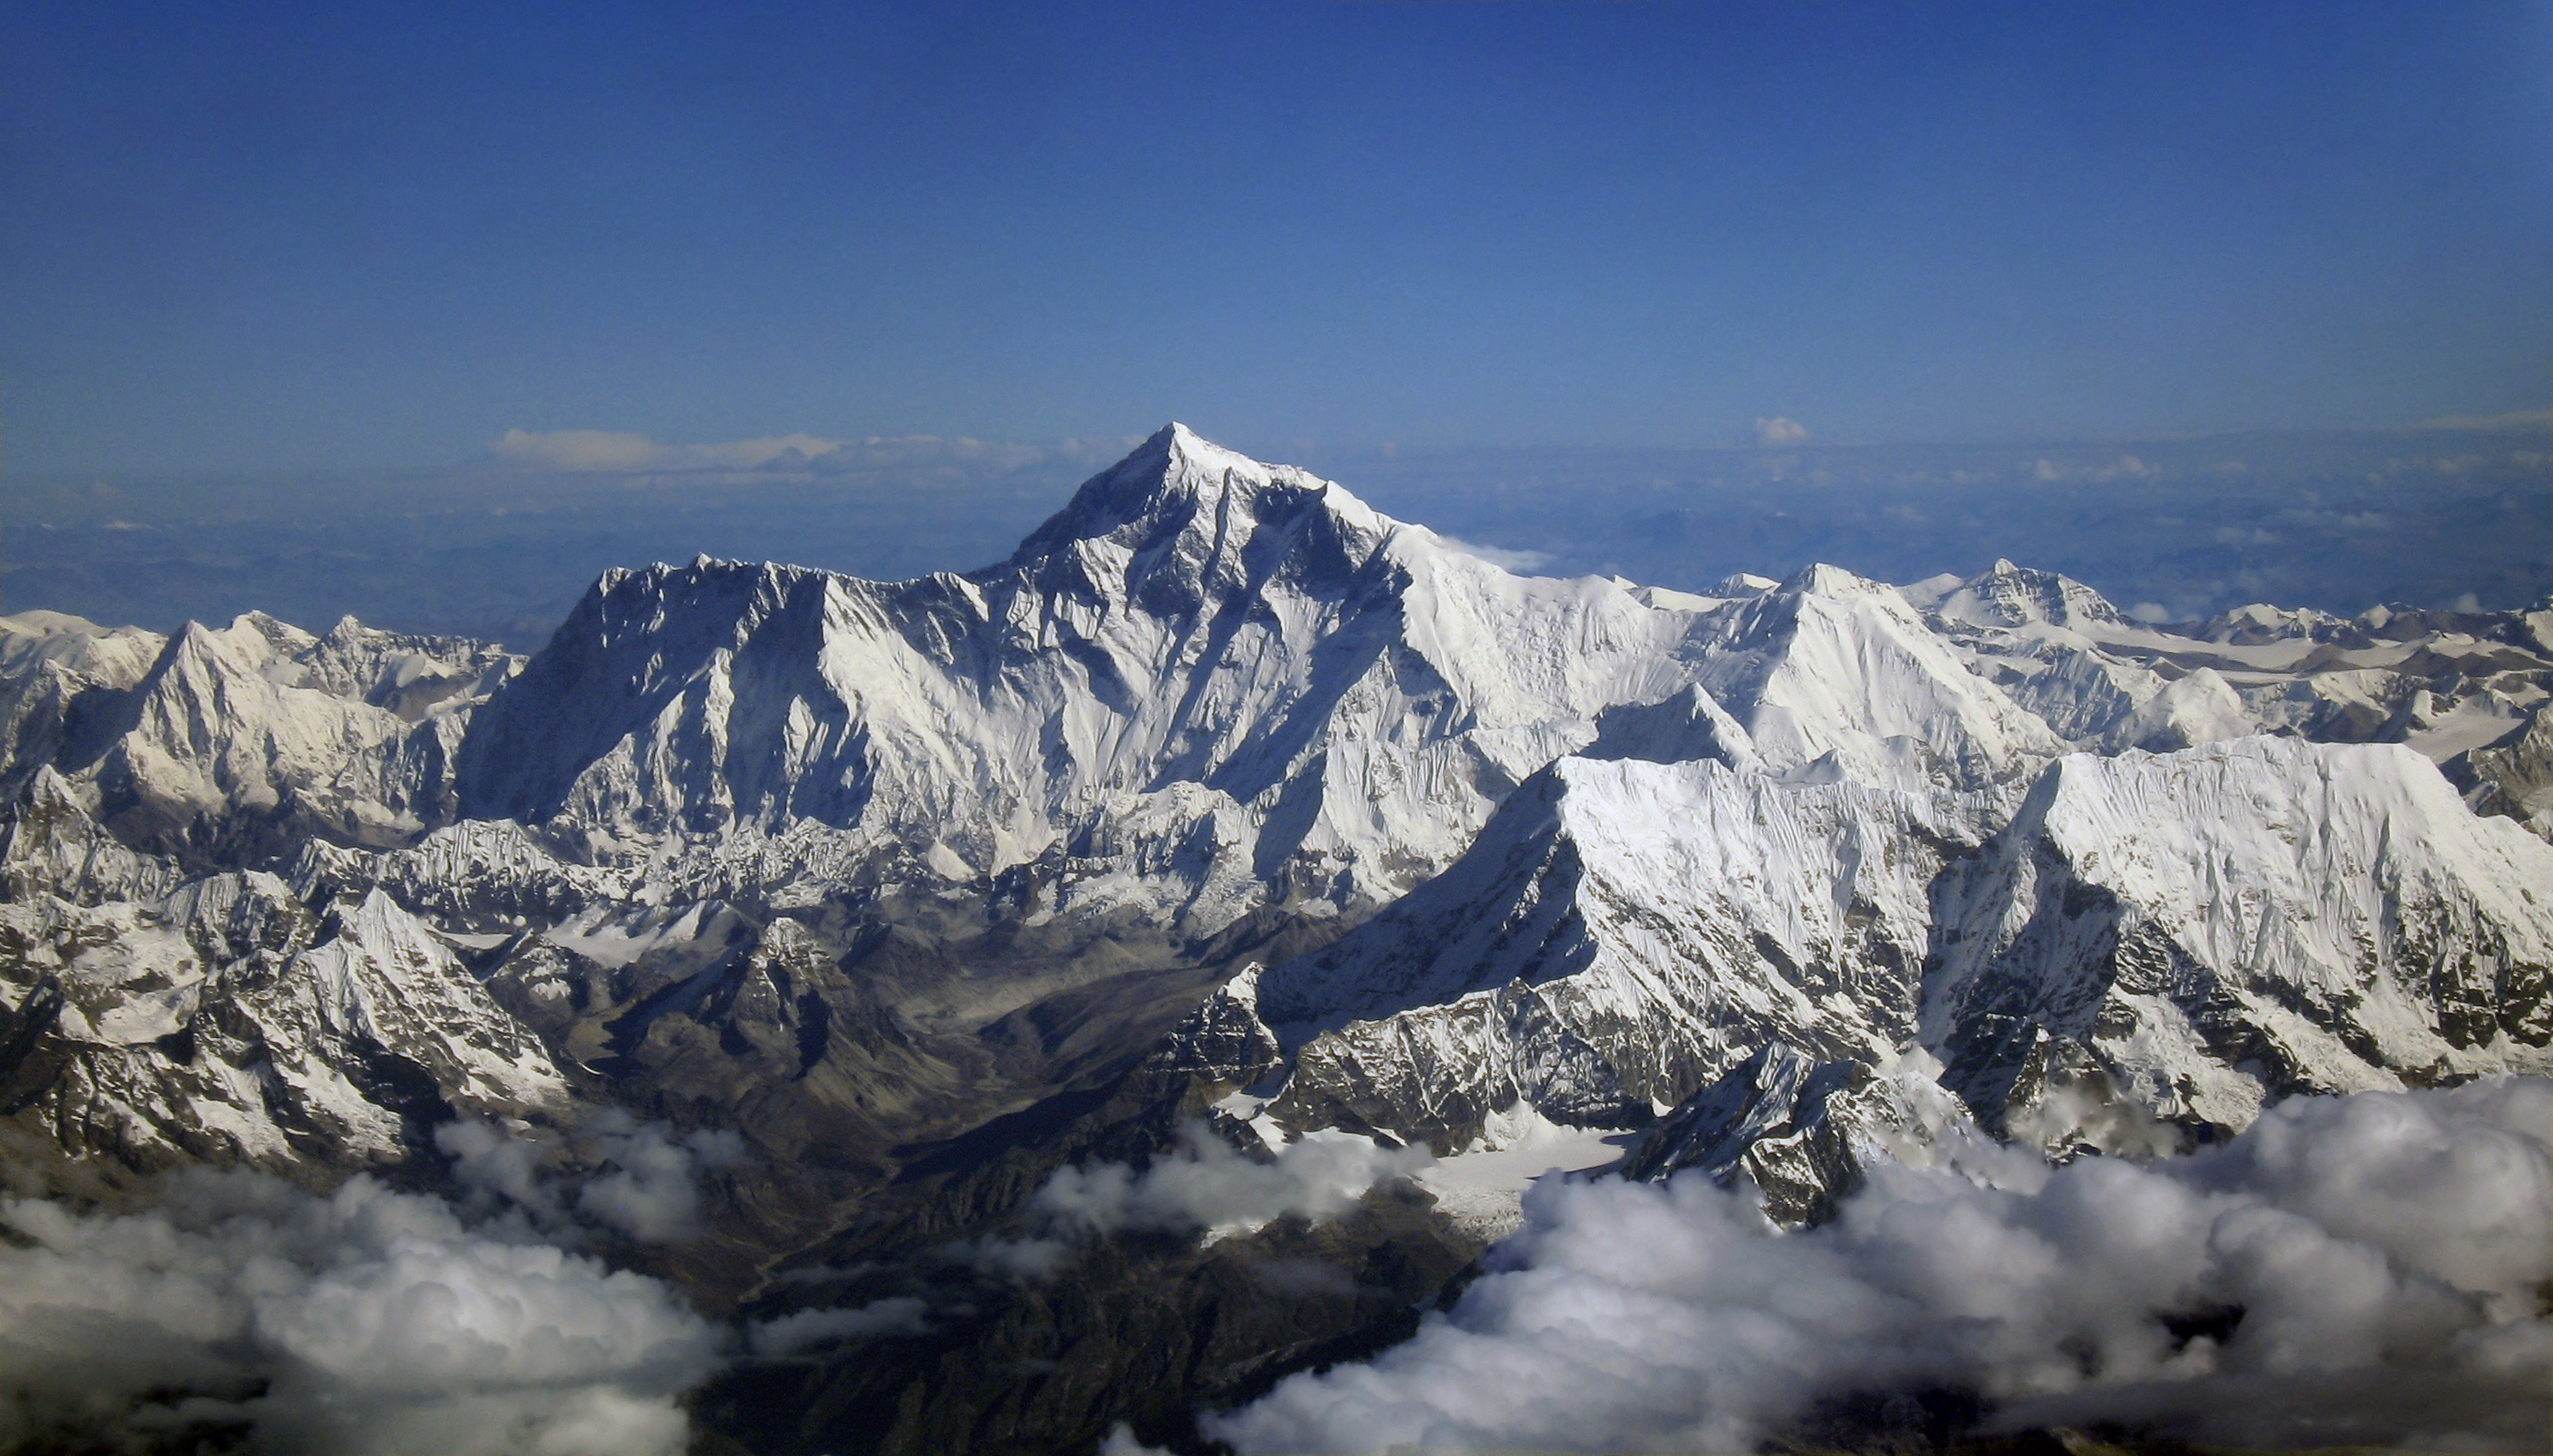 Mount 'Everest', from the Air